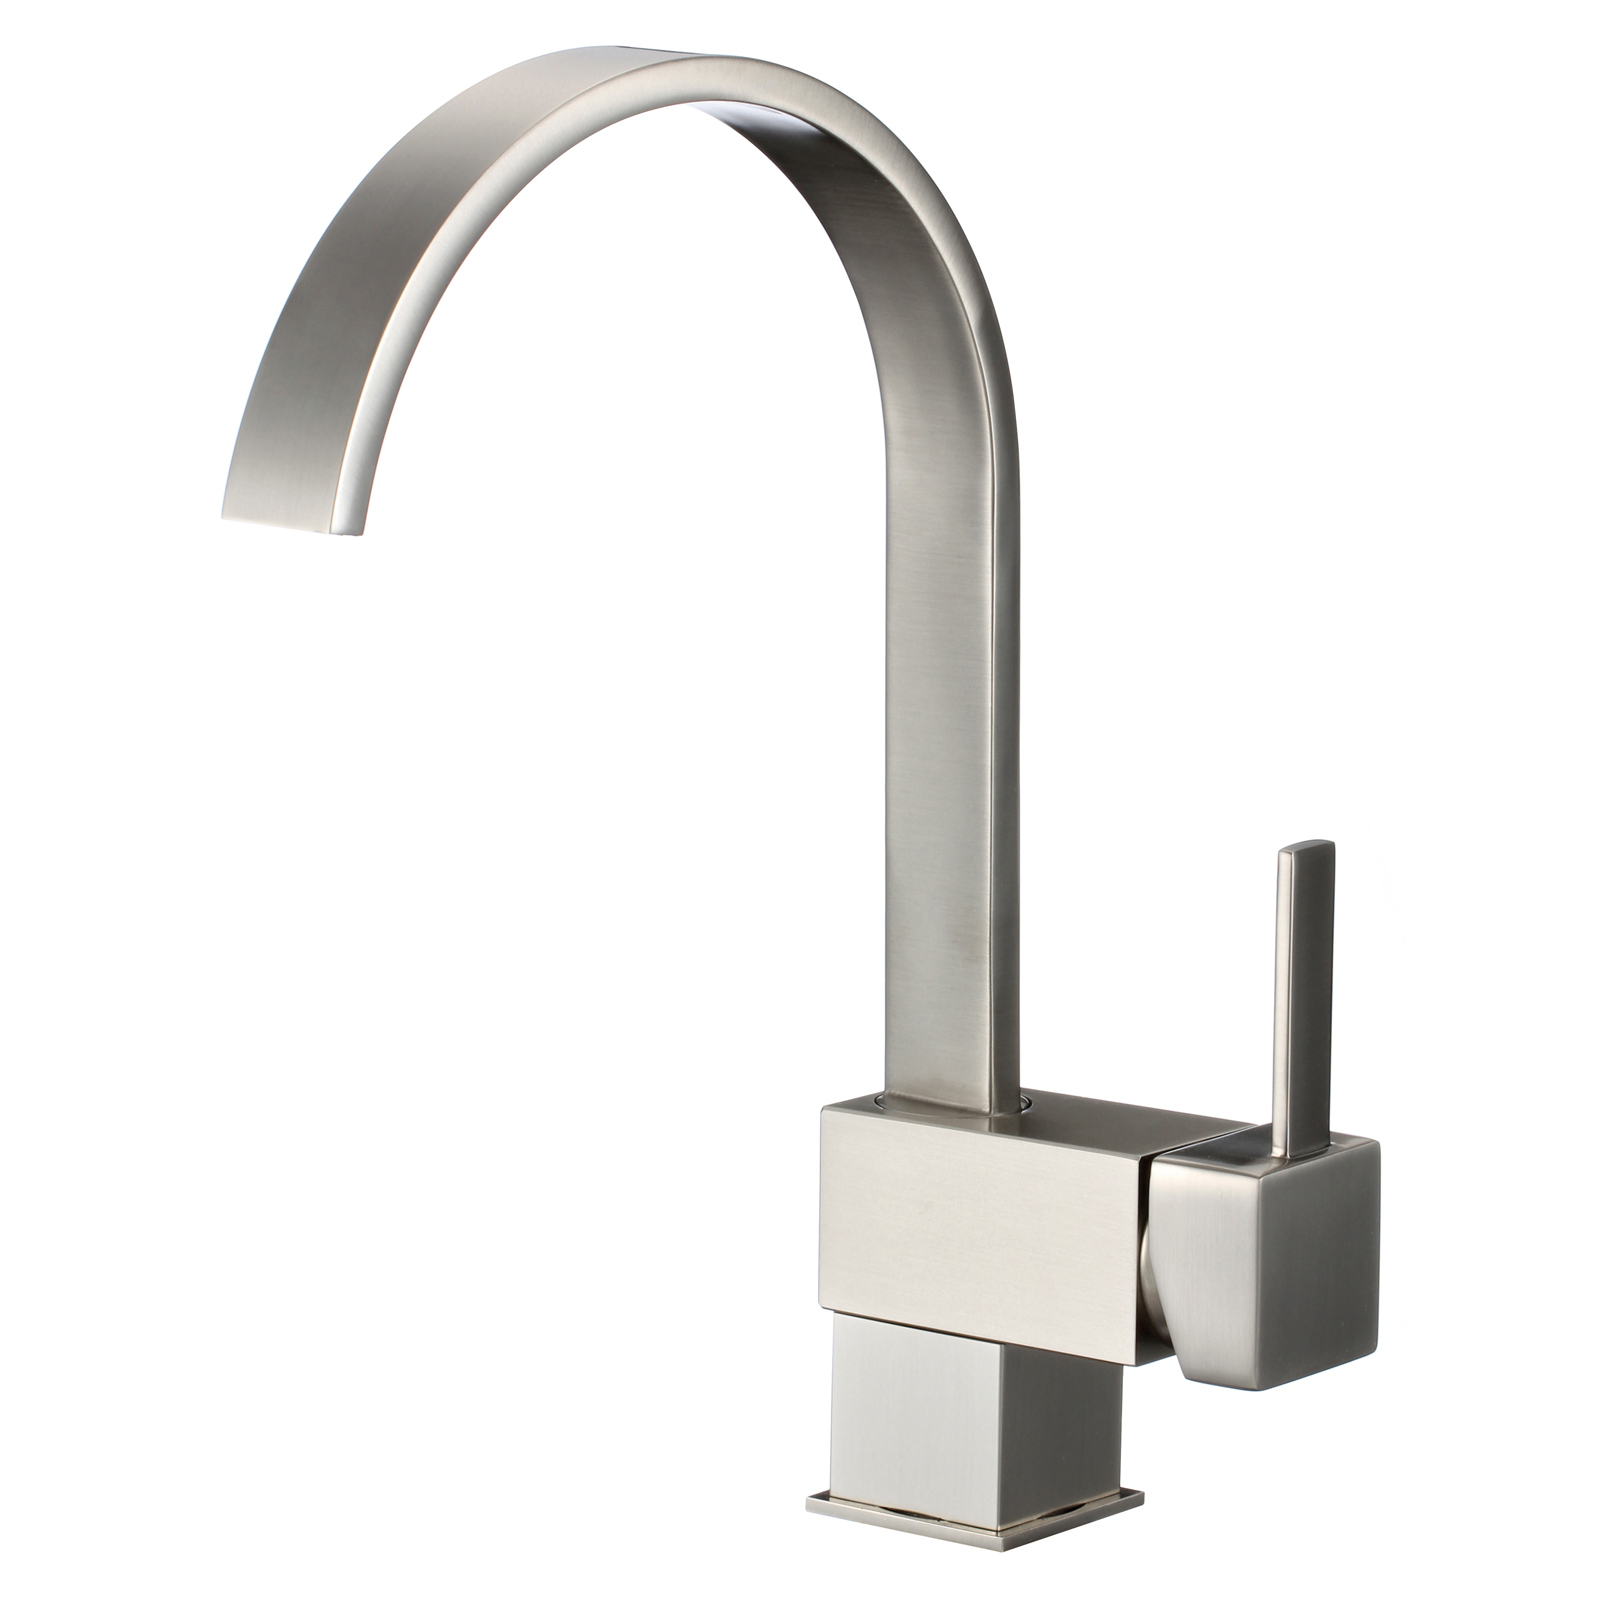 13 Modern Kitchen Bathroom Sink Faucet One Hole Handle Ebay